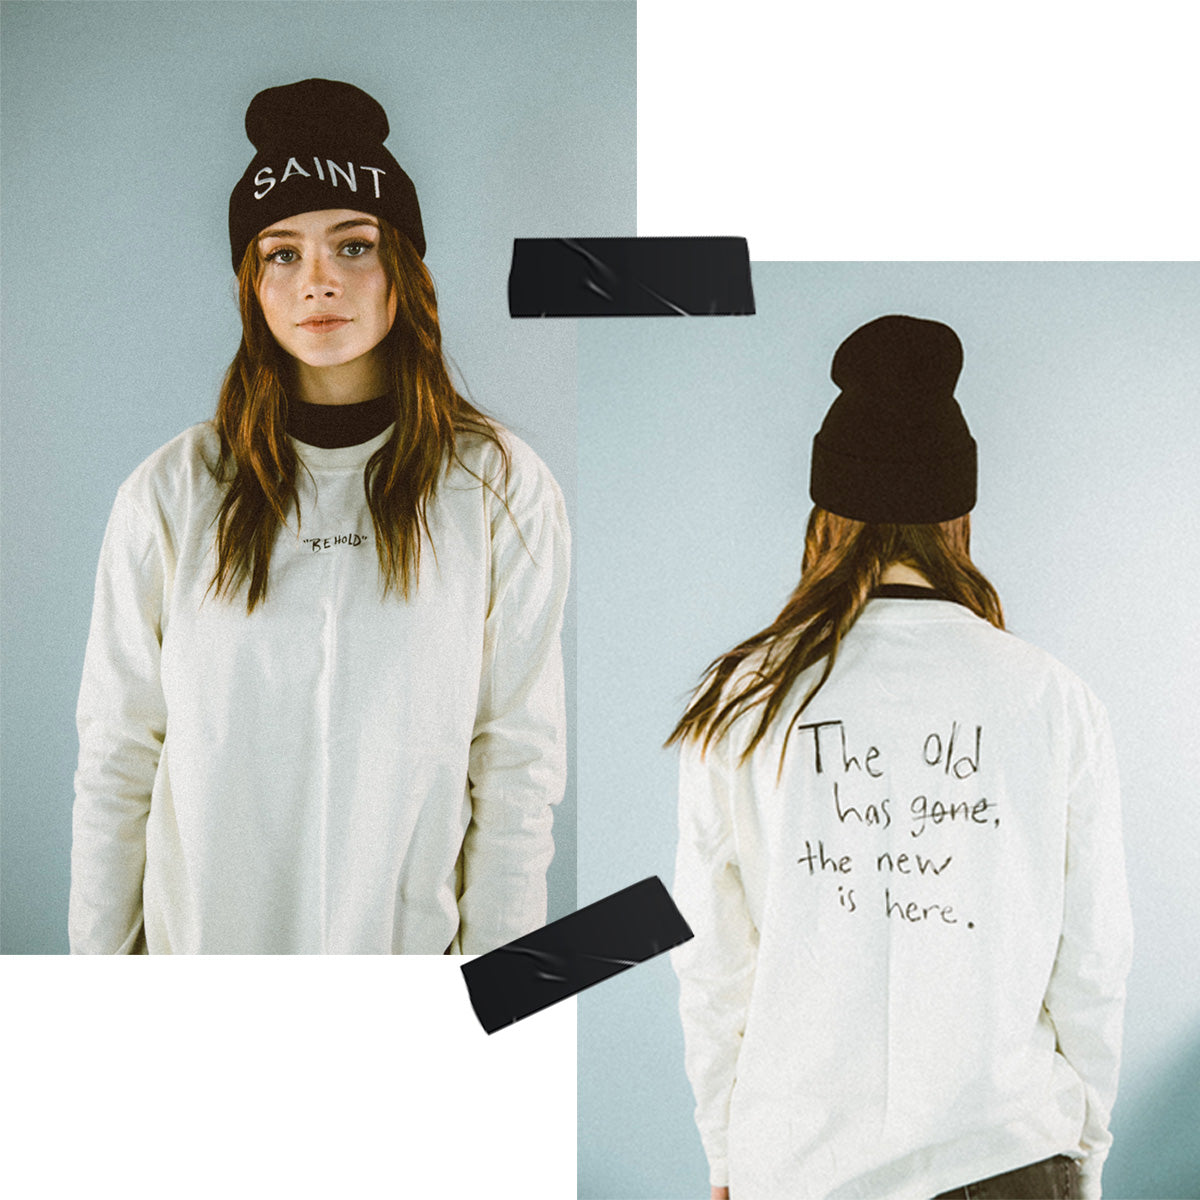 Behold long sleeve tee and Young Saints Beanie modeled by young girl